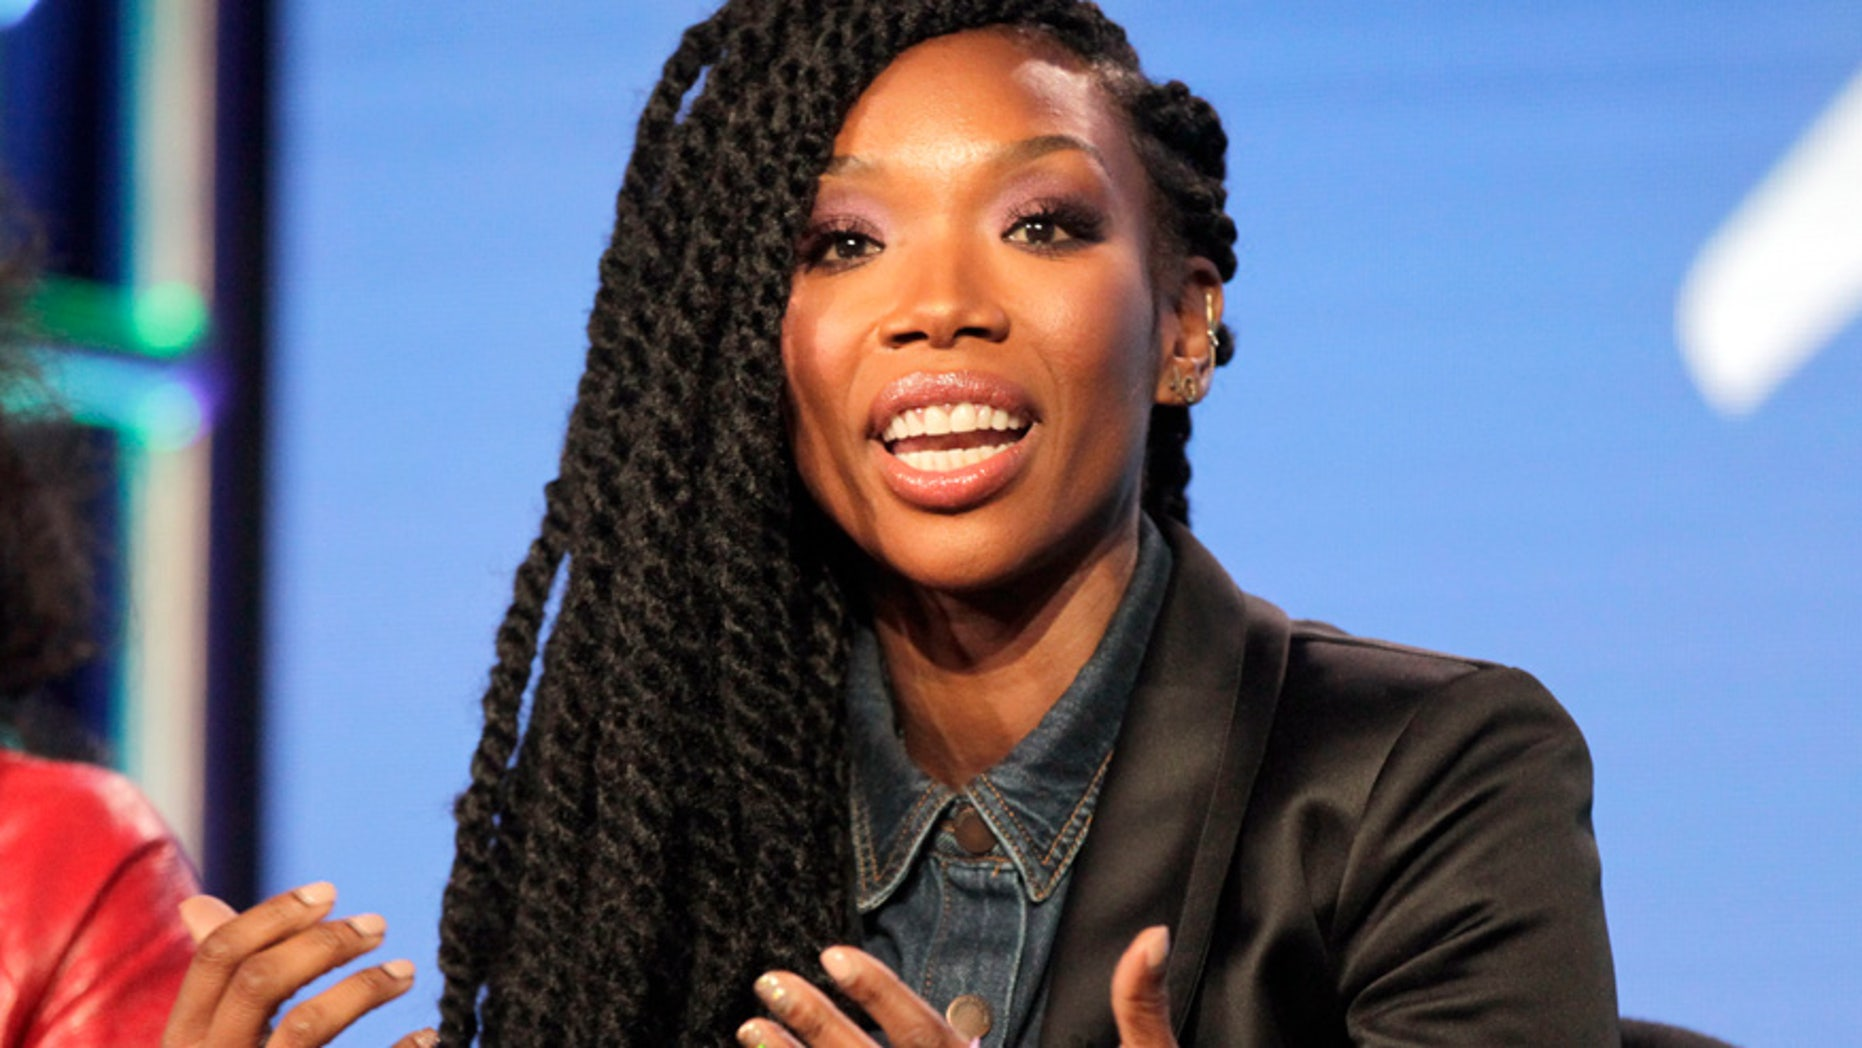 Cast member Brandy Norwood participates in the Viacom BET 'Zoe Ever After' panel during the Television Critics Association (TCA) Winter press tour in Pasadena, California January 6, 2016.